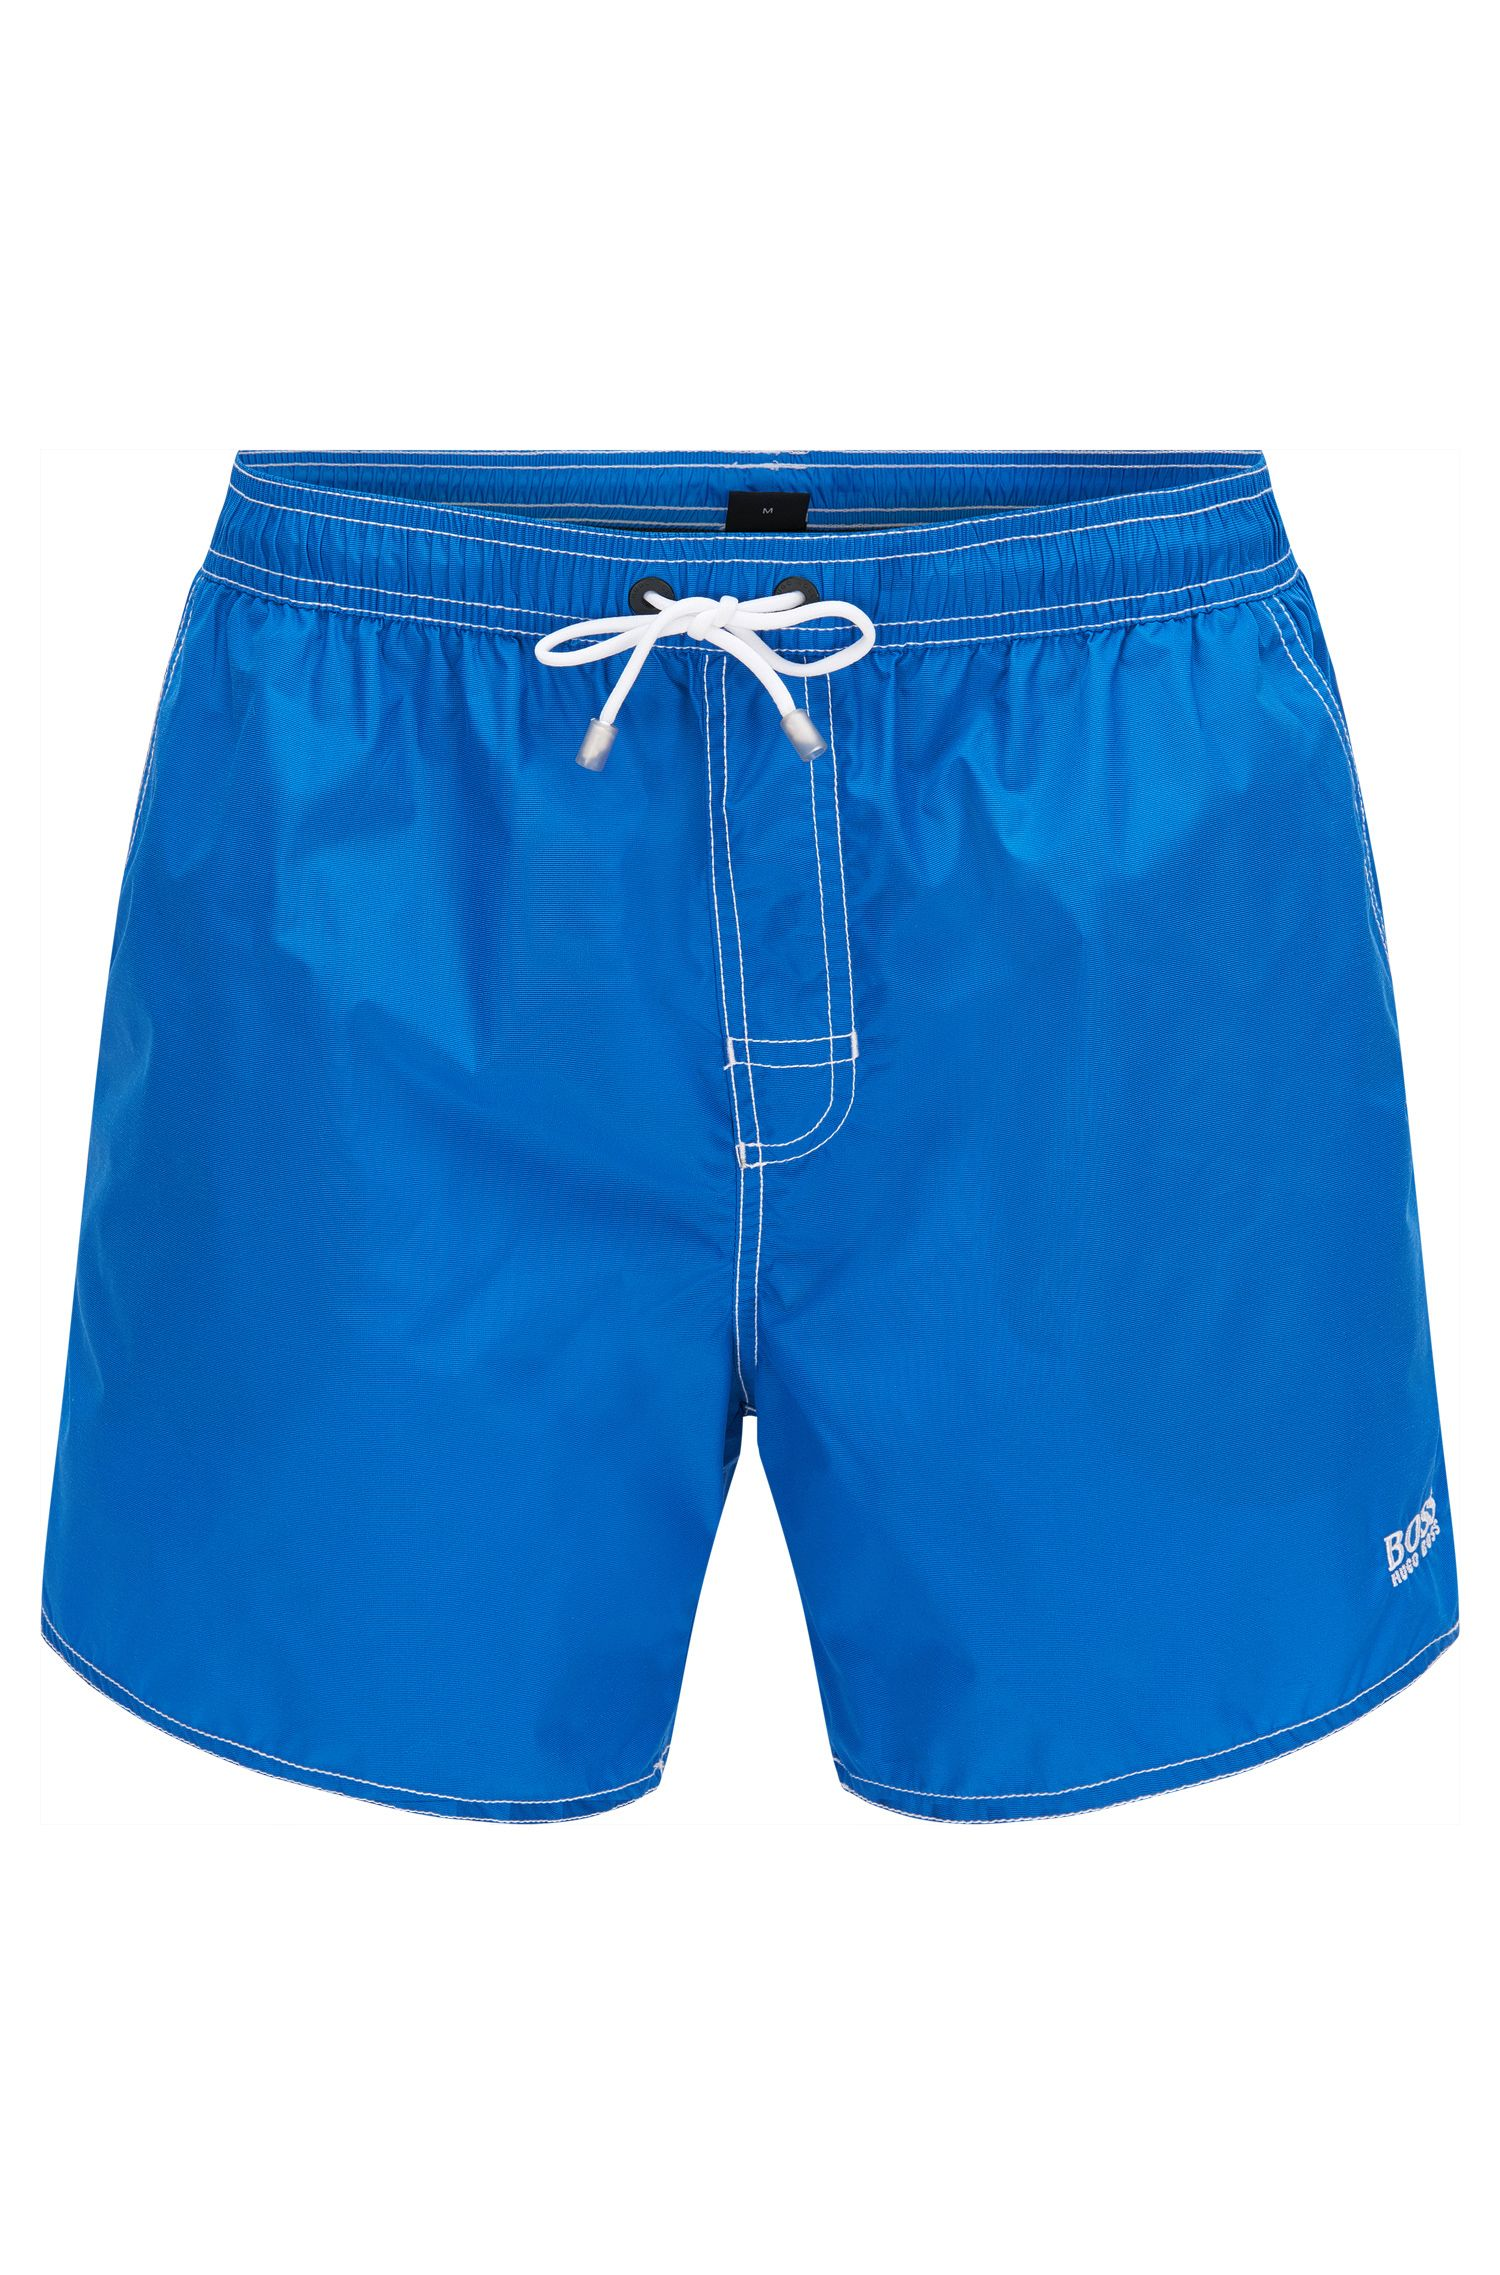 Quick Dry Swim Trunks | Lobster